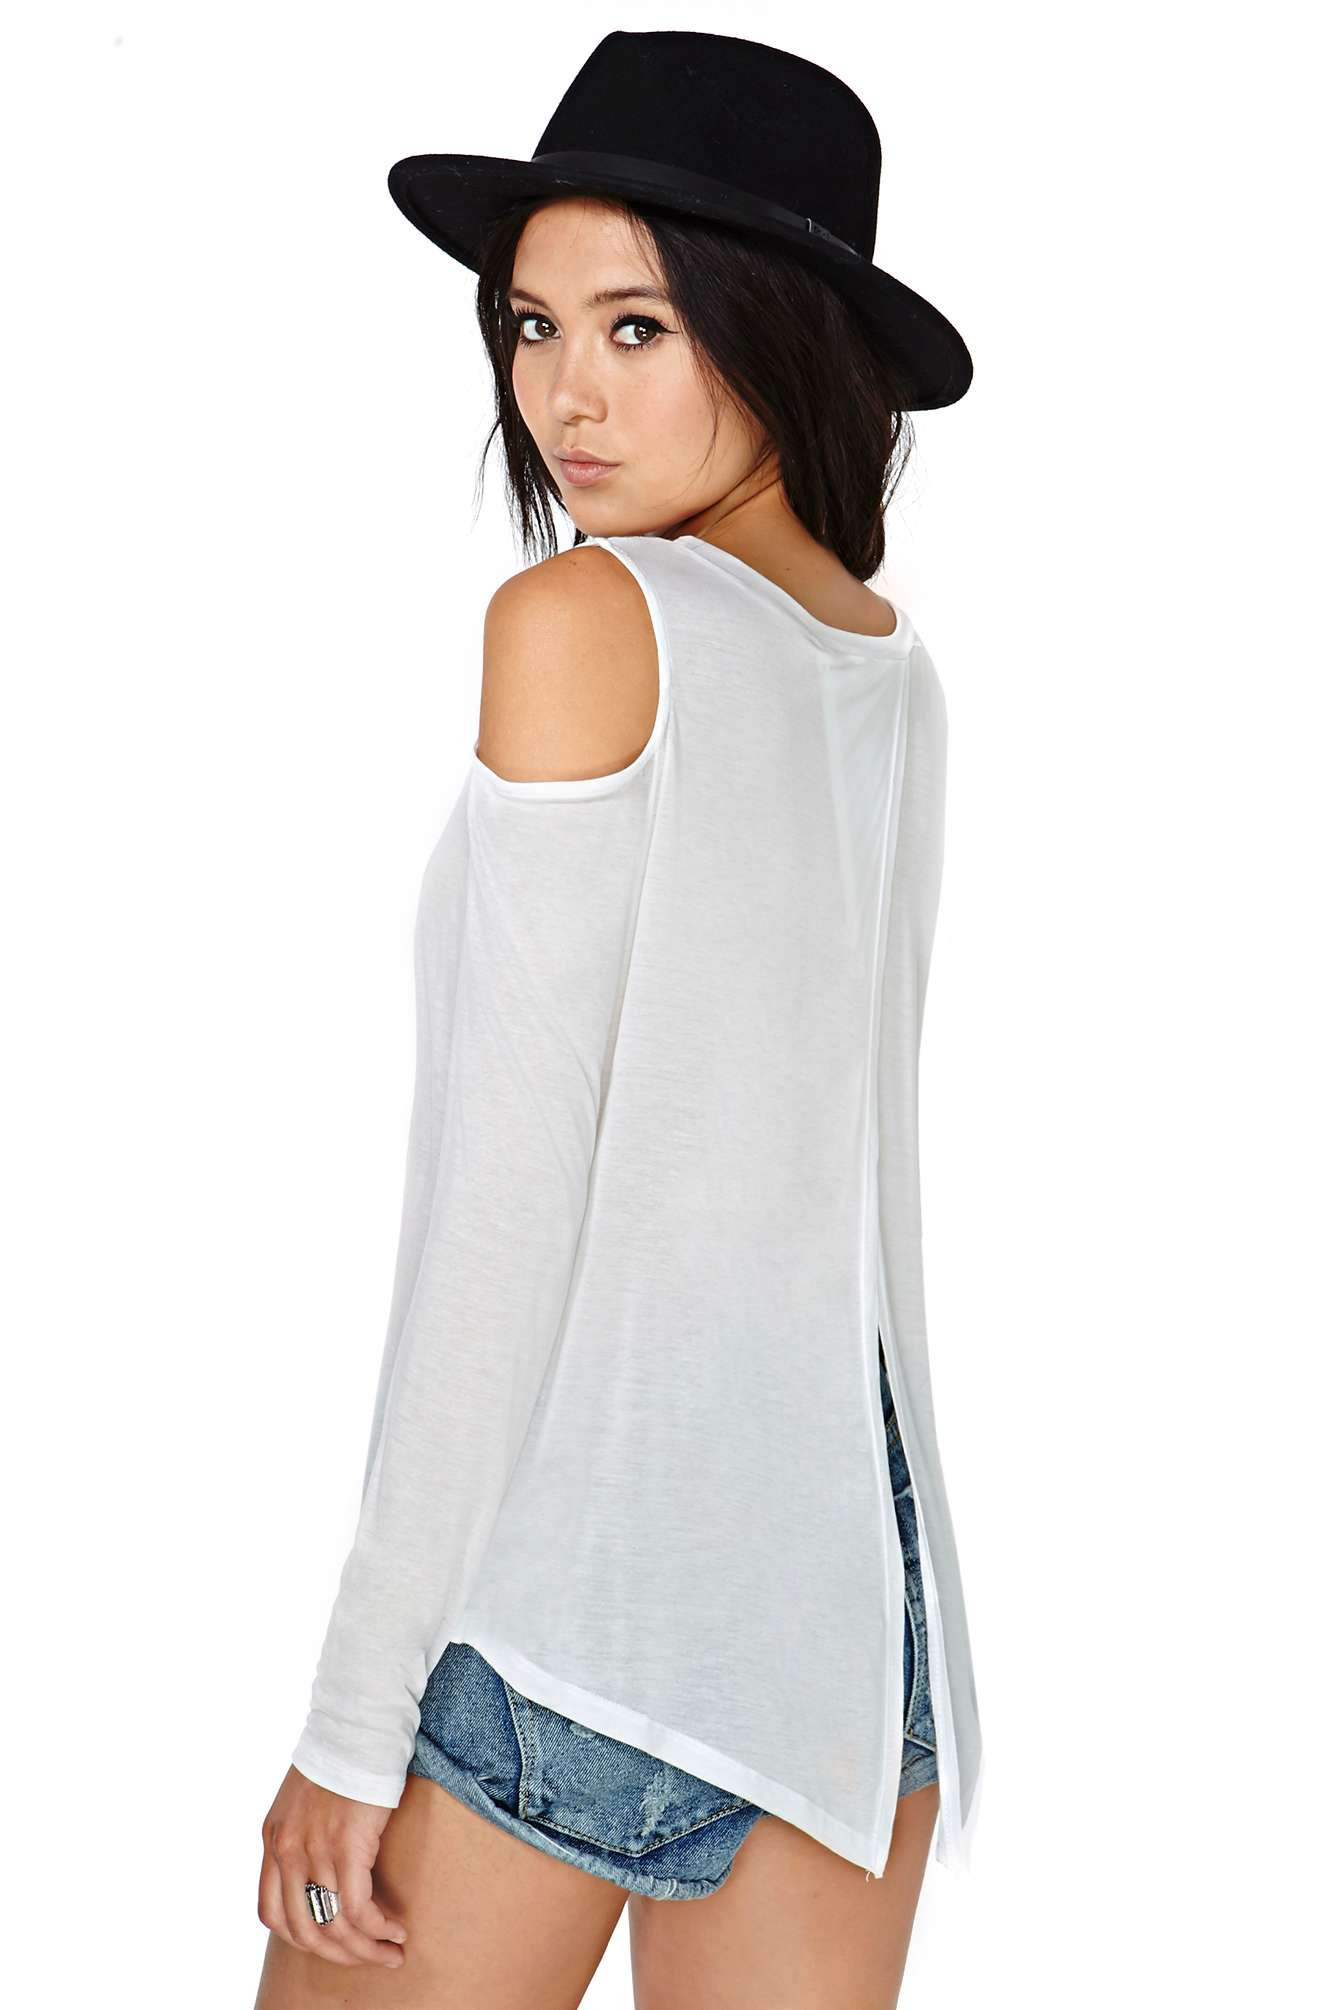 White Long Sleeve Cutout Shoulder Wrap Back T-shirt - Sheinside.com